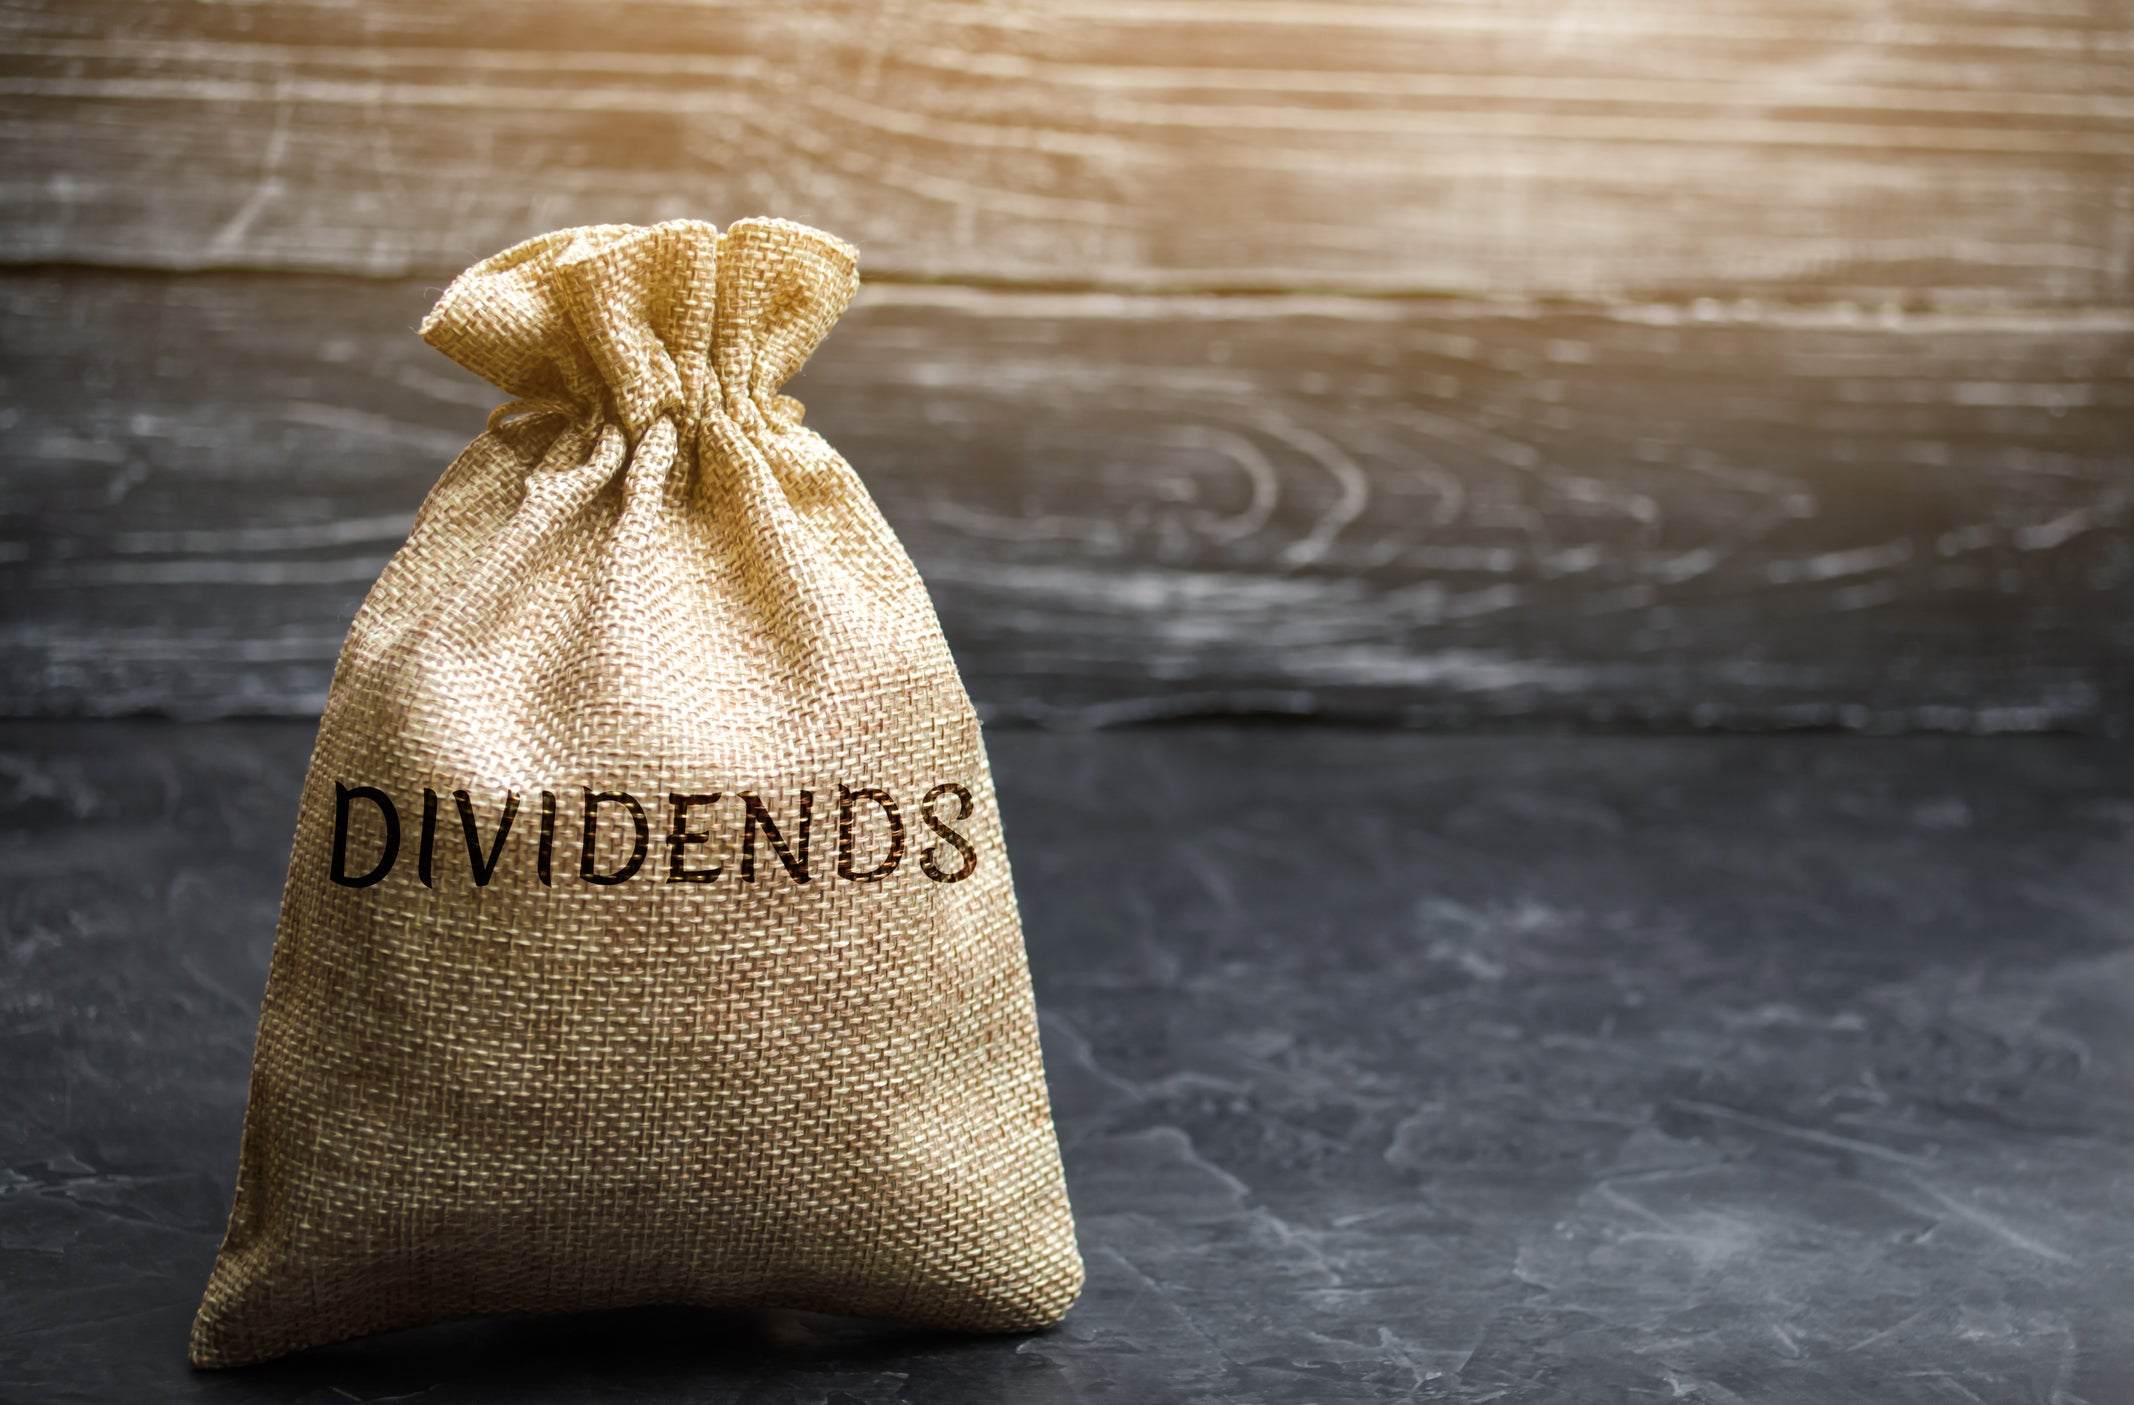 Dividend Investors Should Snap Up These Stocks During a Recession | The Motley Fool